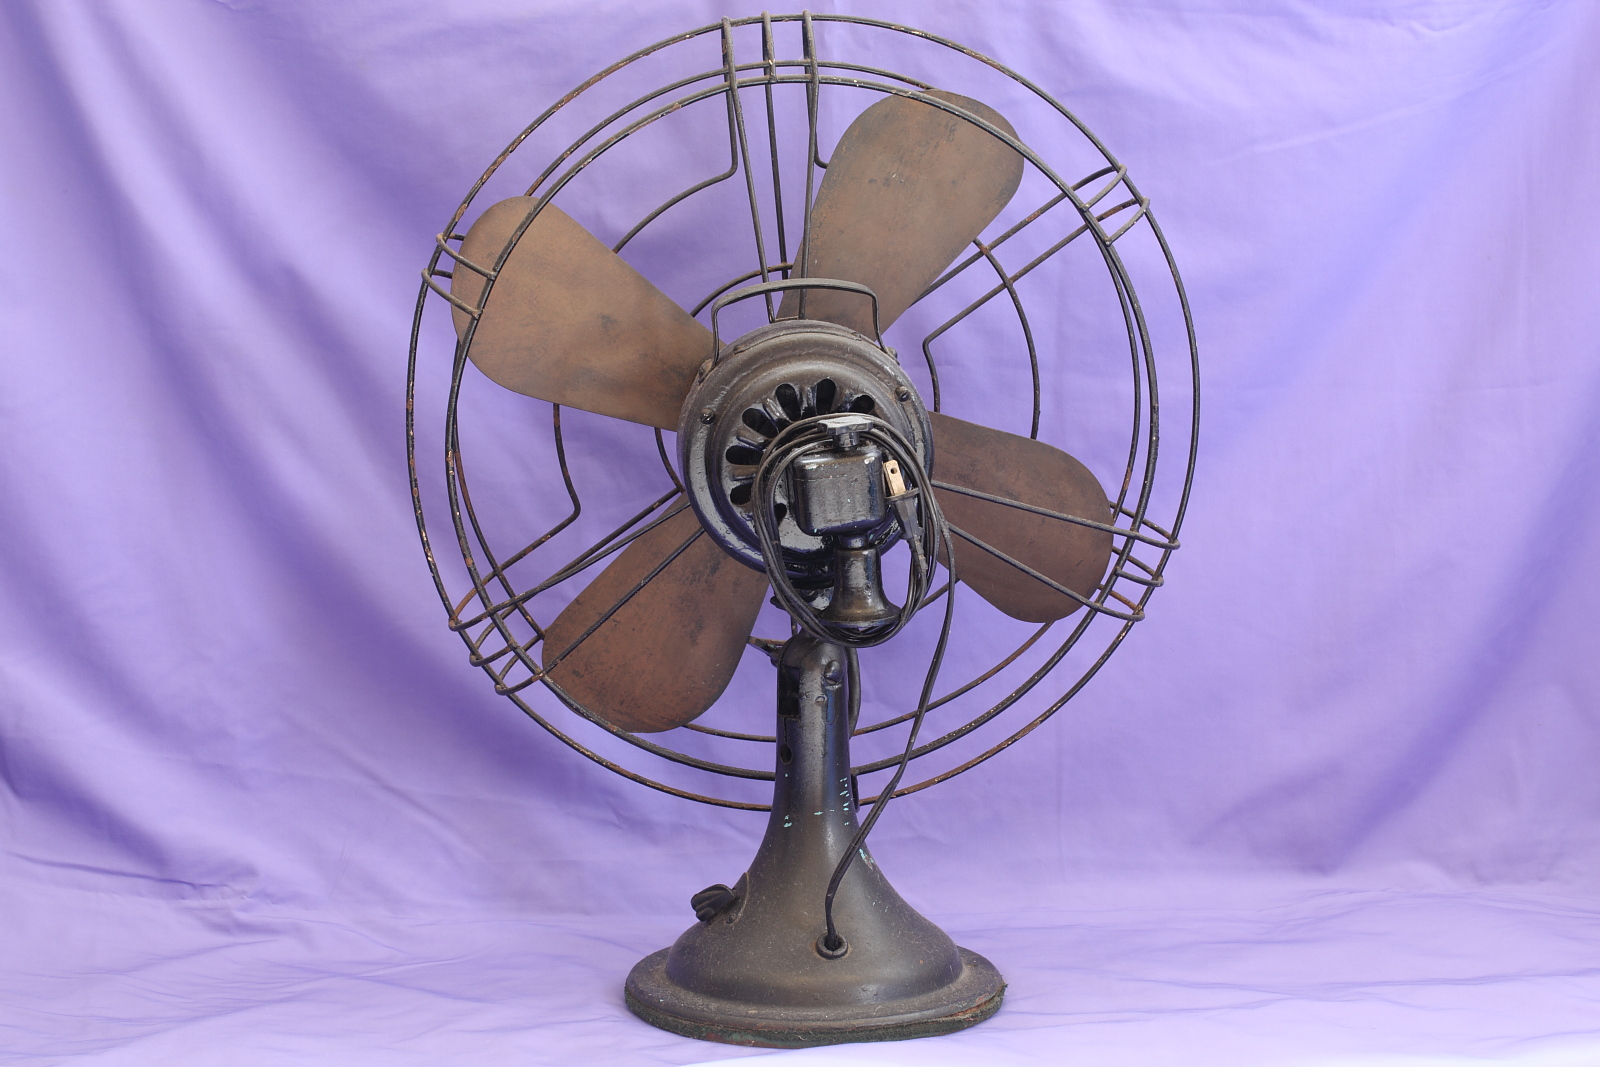 People Using Electric Fan : Enticz antique electric fan